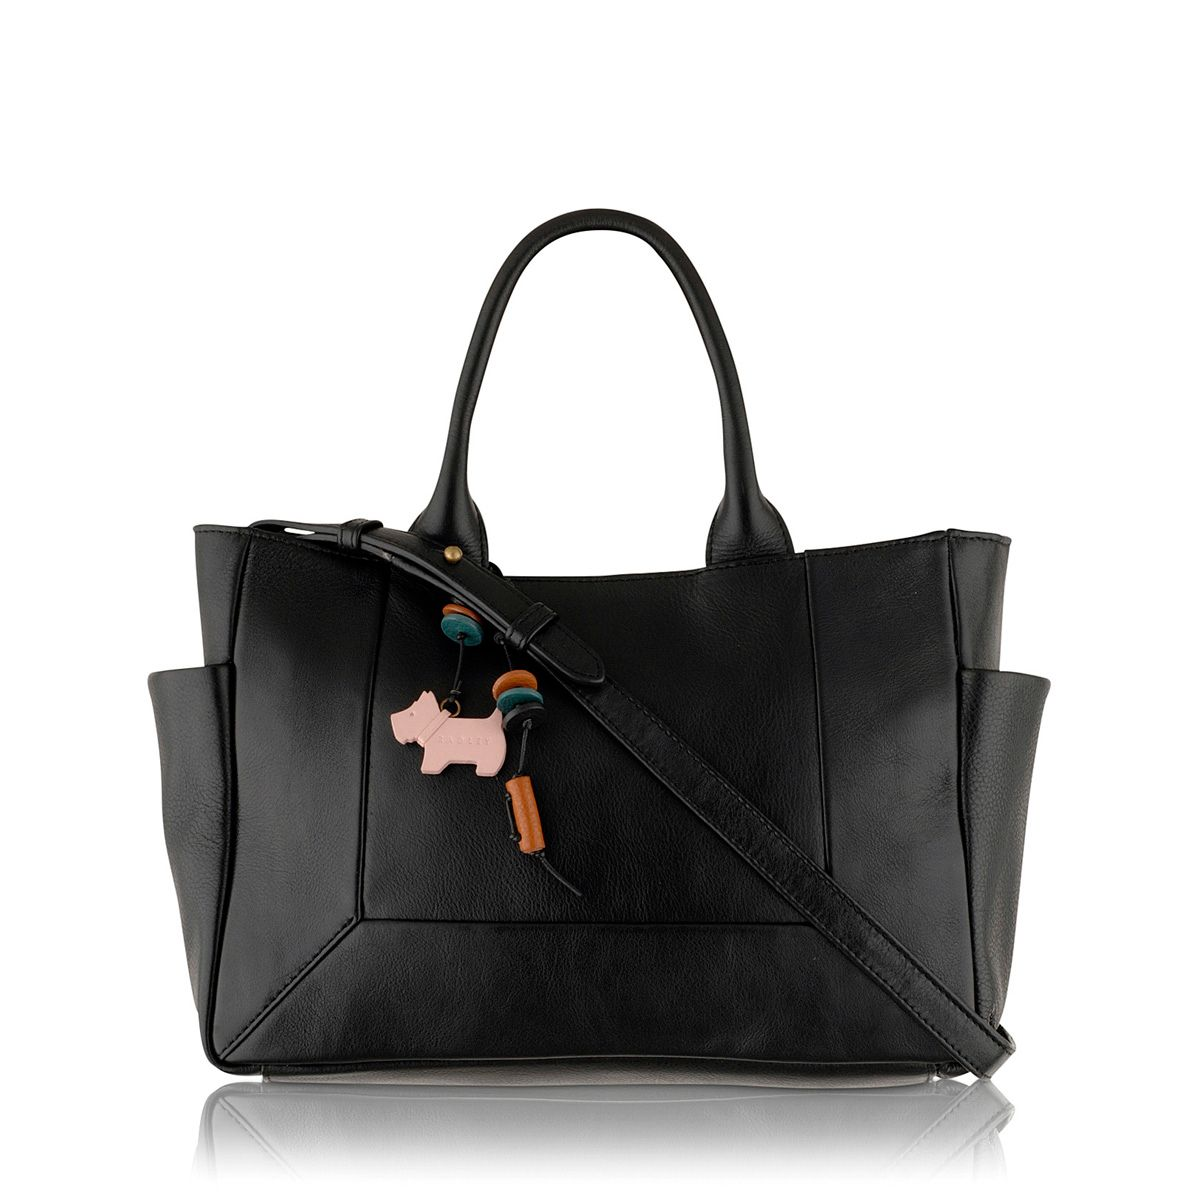 Border medium black crossbody tote bag